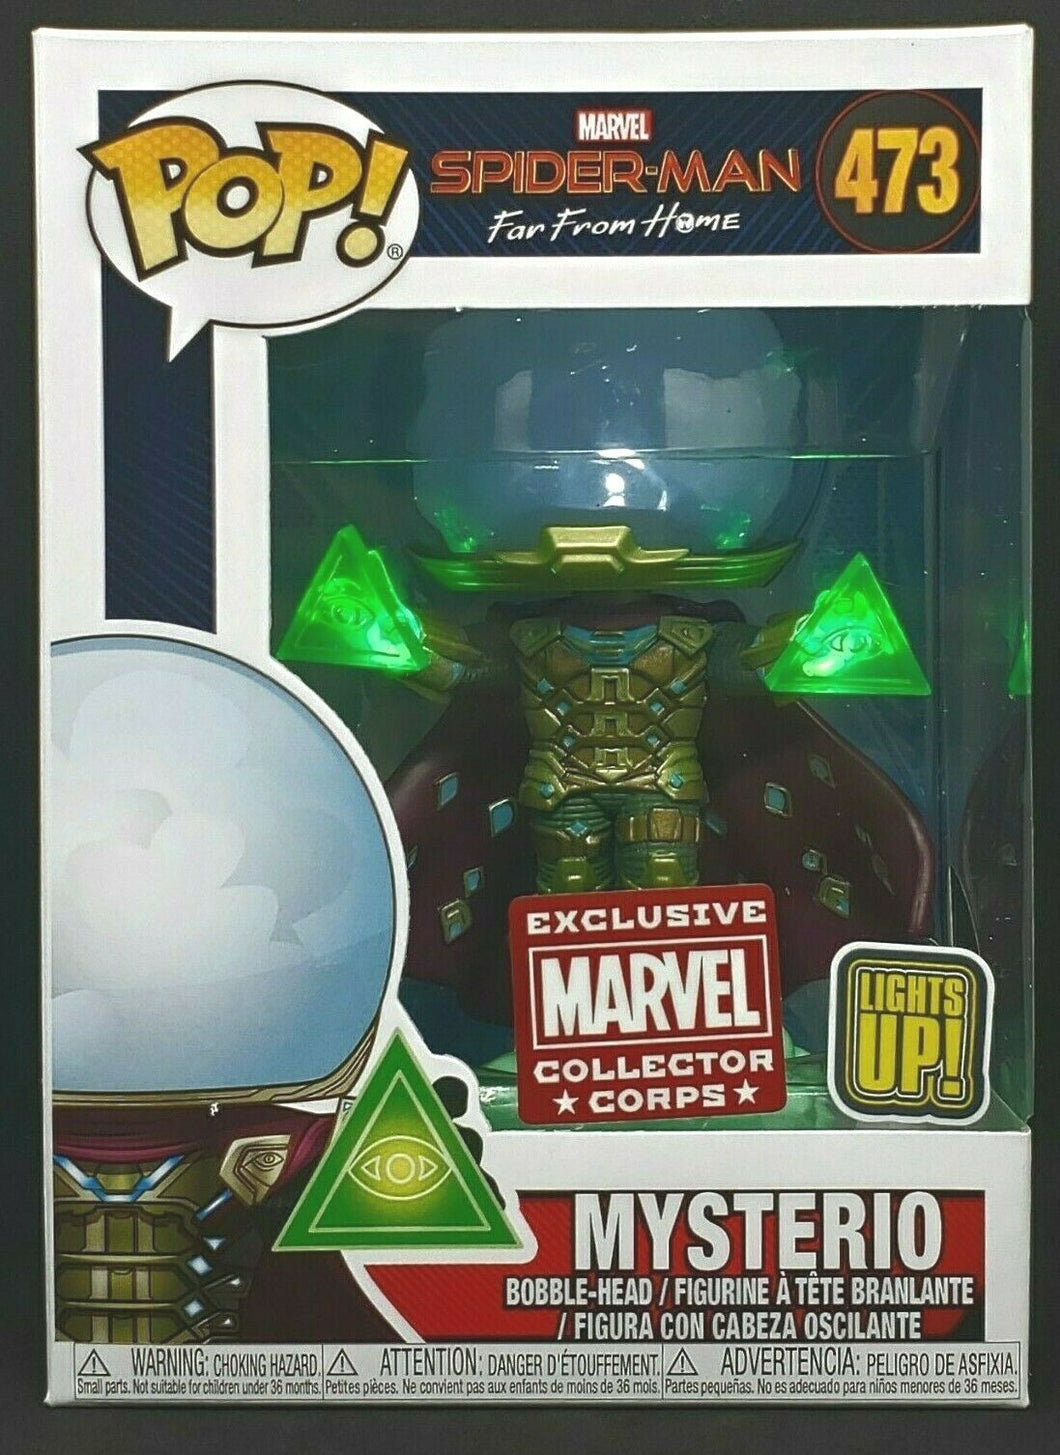 Funko POP! Marvel Spider-Man Far from Home - Mysterio (Collector Corps) (Light Up)